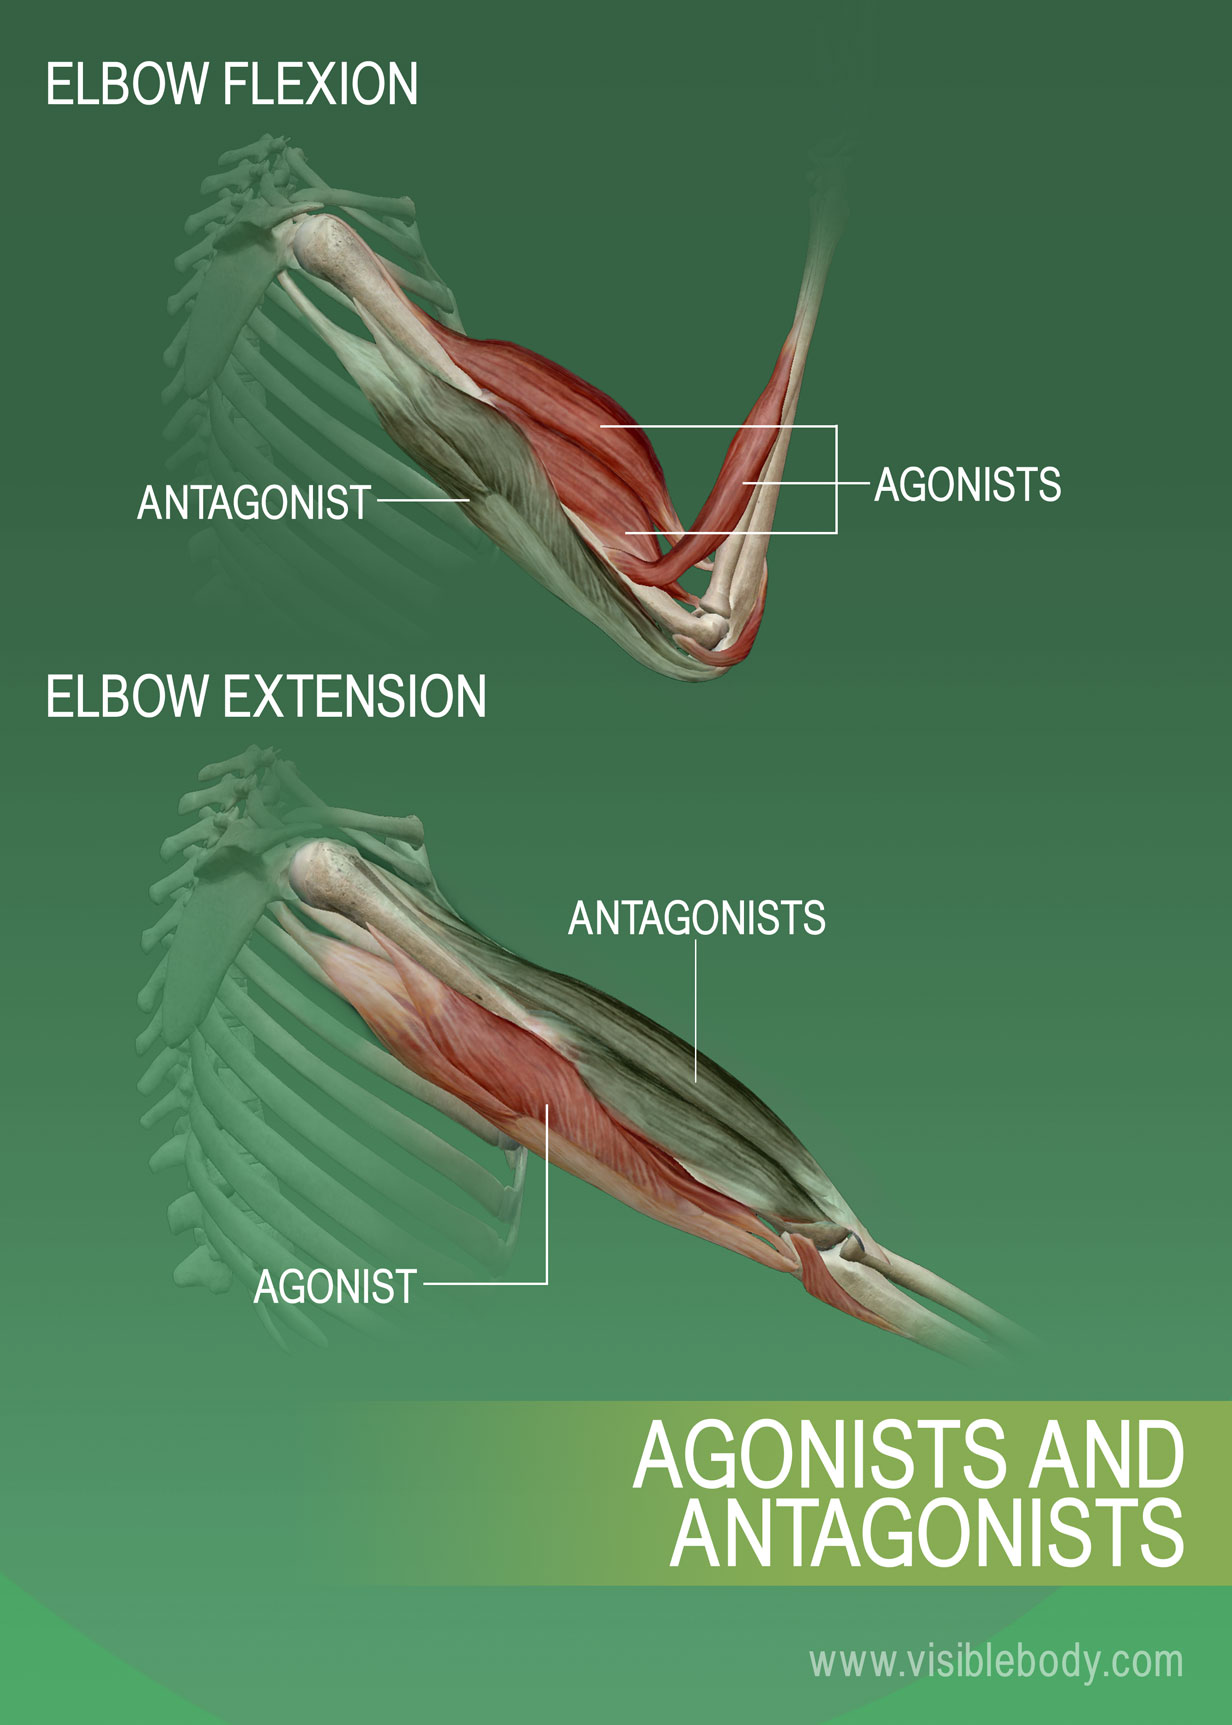 Agonists, antagonists, and synergists of muscles